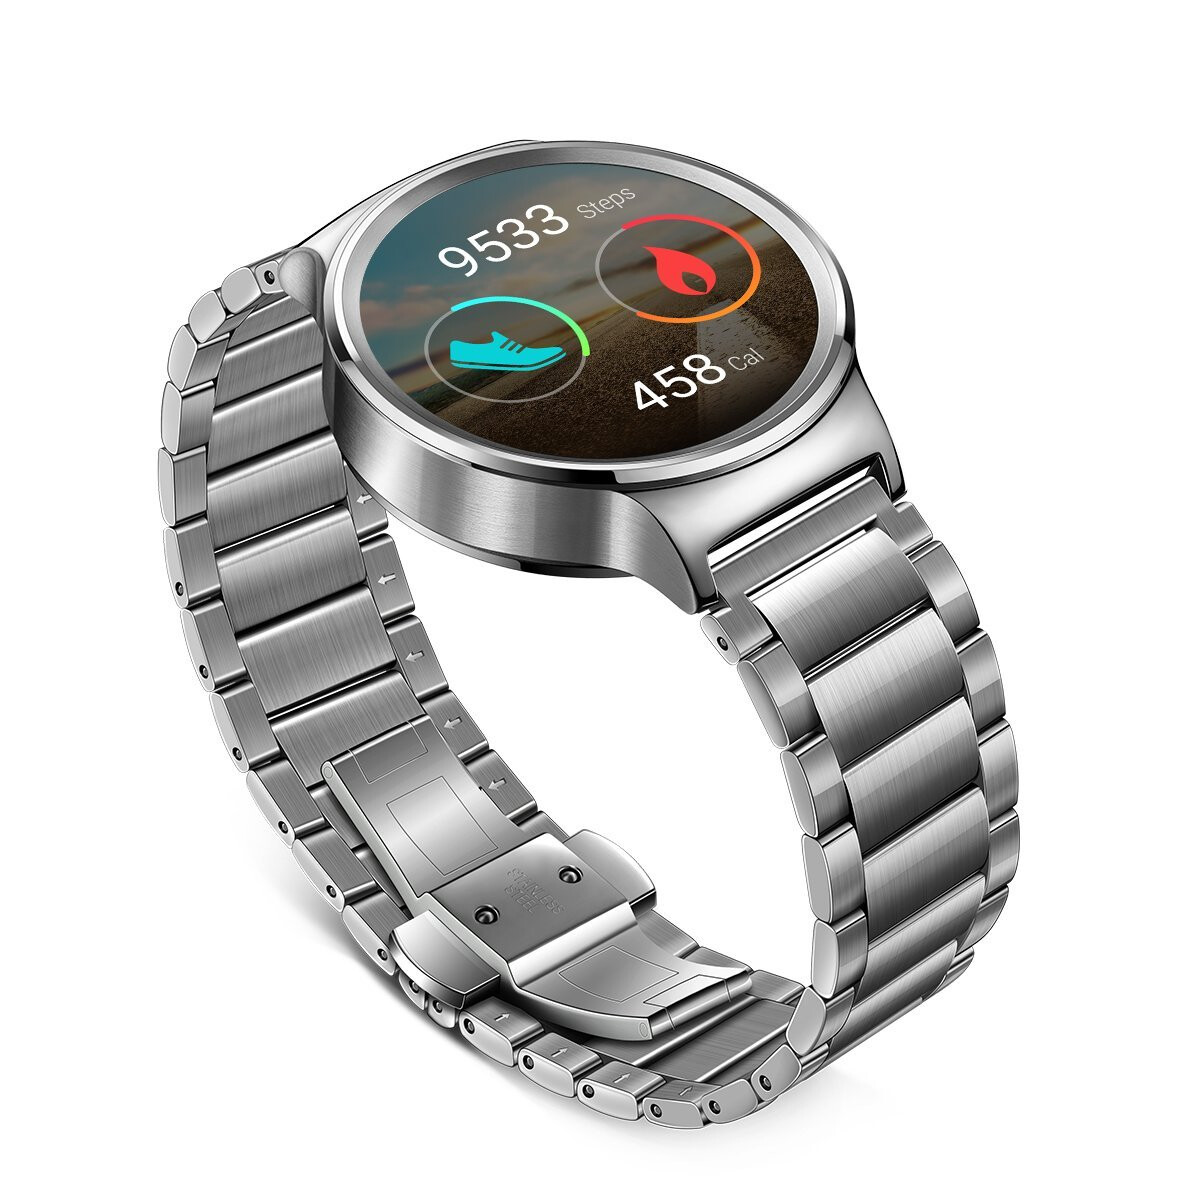 Deal Multiple Huawei Watch Models On Sale Over At Amazon